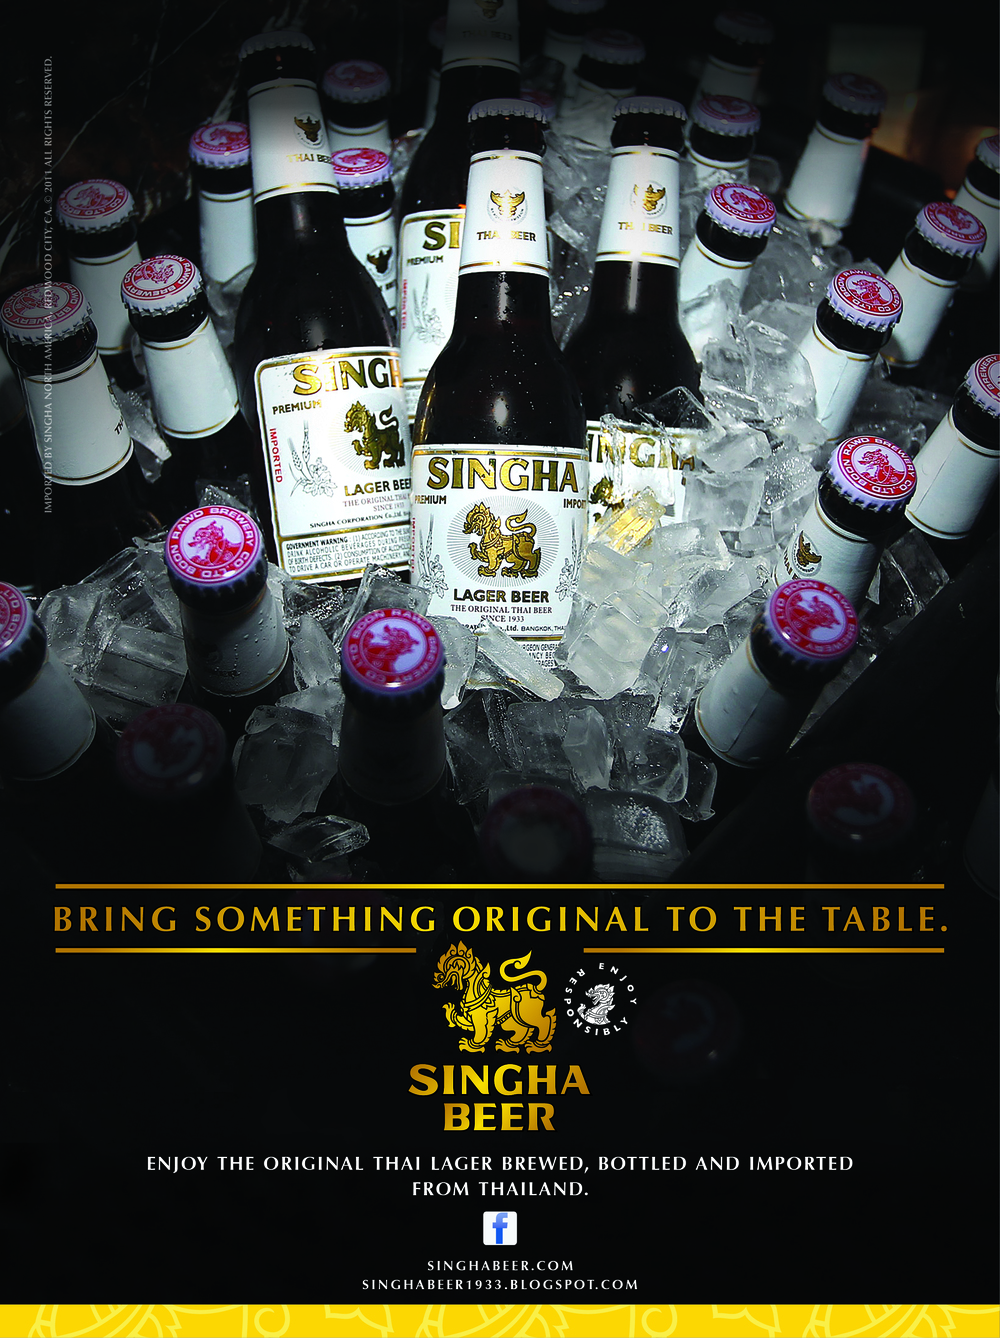 Singha Beer02_All About Beer Magazine_PRINT.jpg